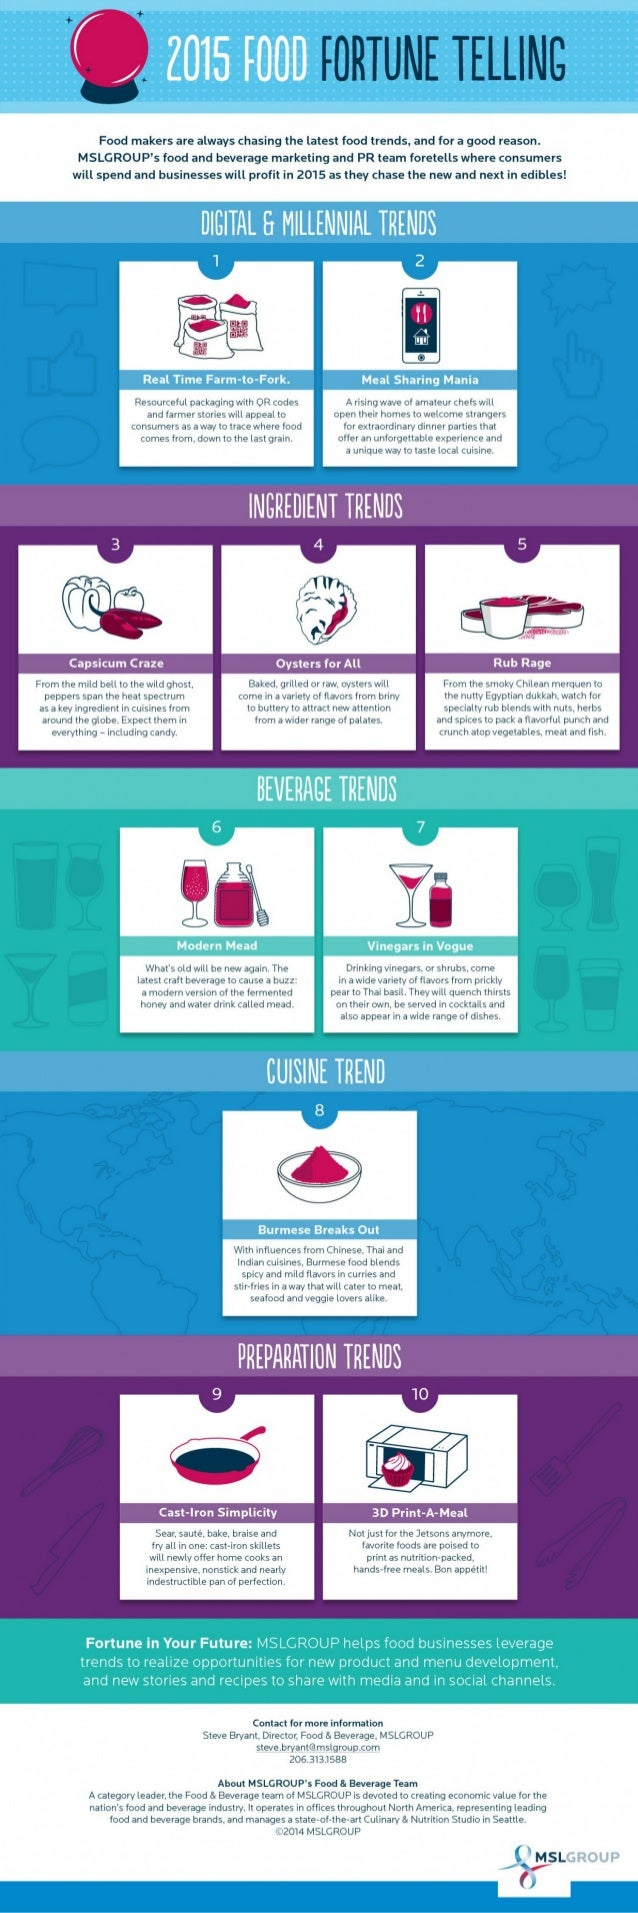 Infographic - 2015 Food Fortune Telling